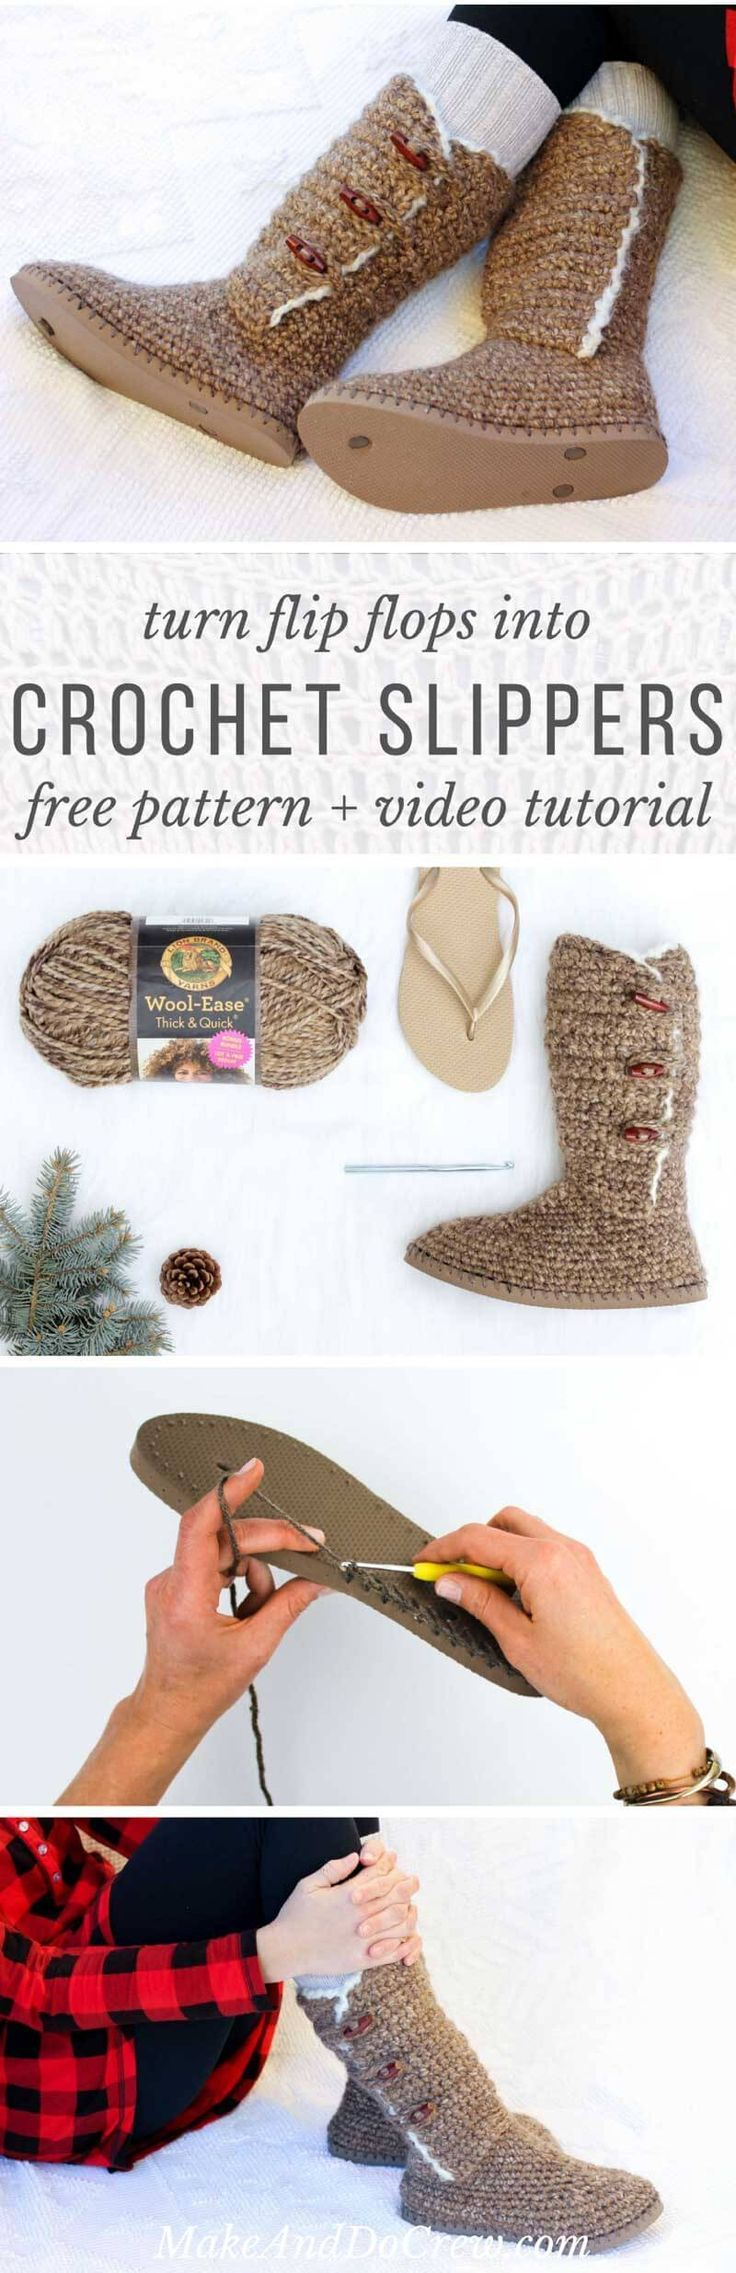 UGG-Style Free Crochet Boots Pattern Using Flip Flops | Greatness ...